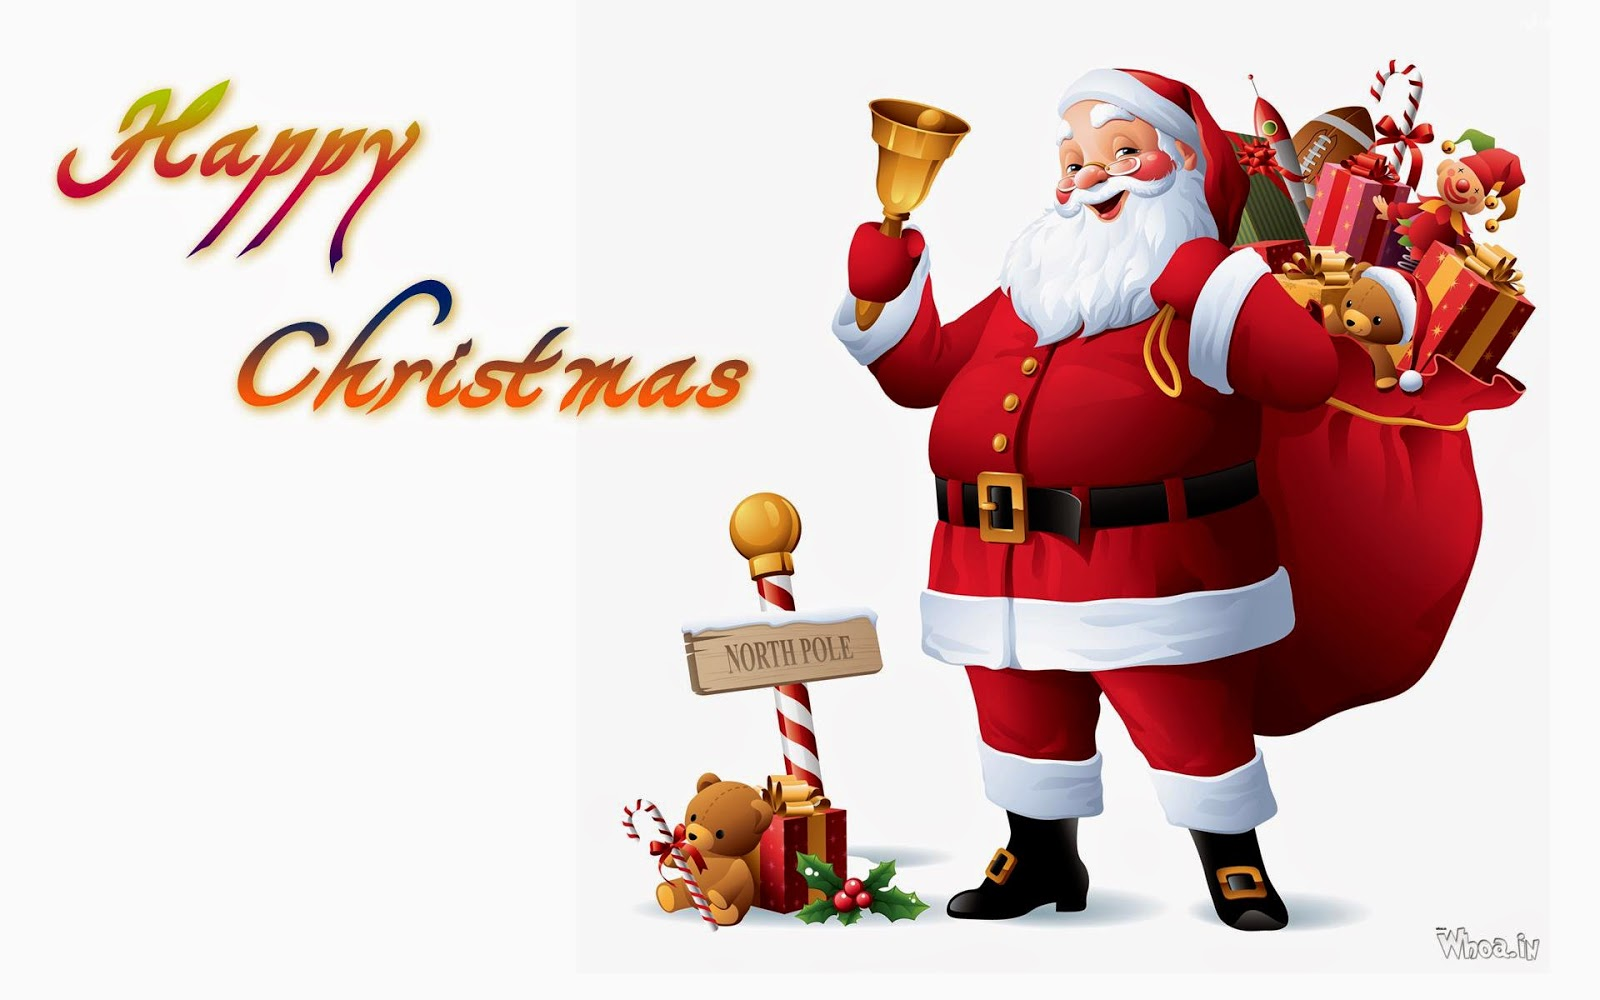 Merry--christmas-3d-santa-claus-image-with-gifts-HD-wallpaper.jpg